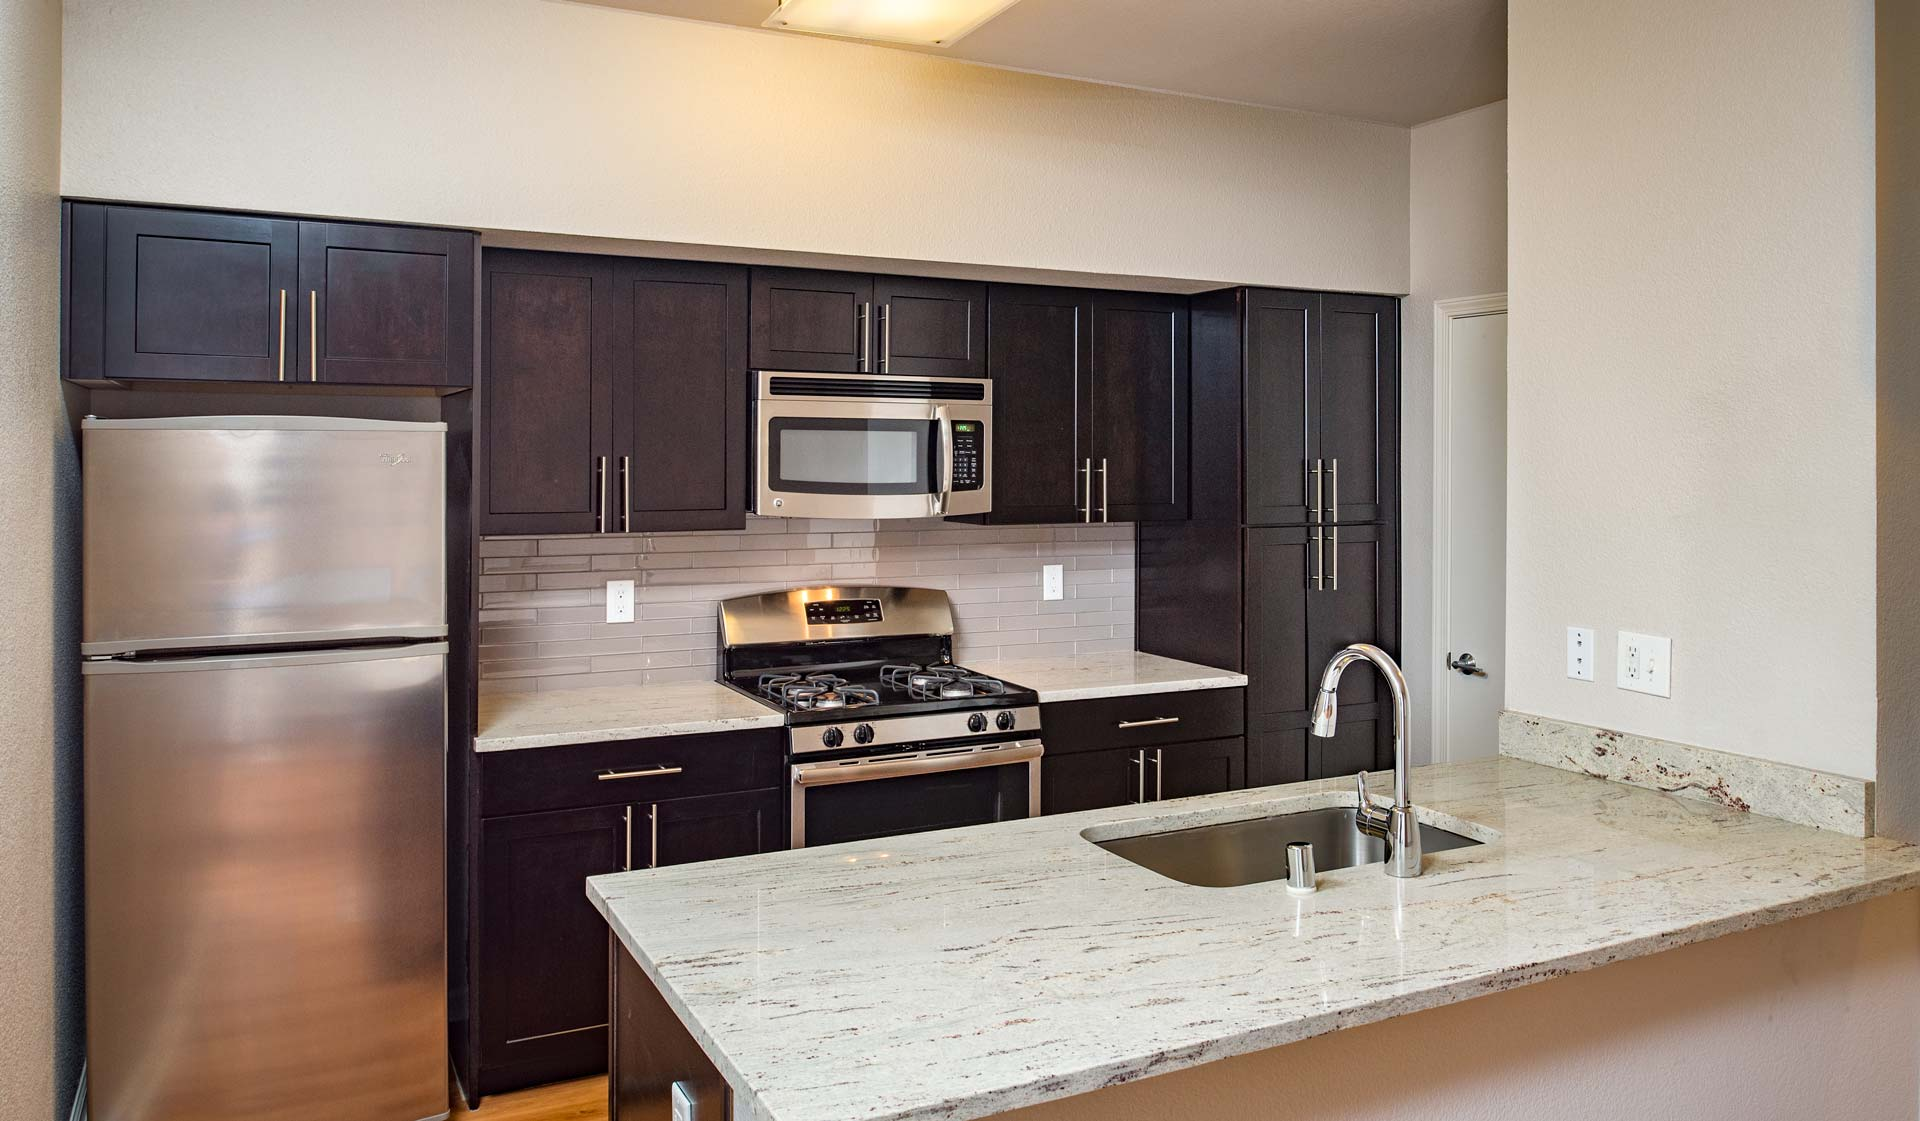 Saybrook Pointe - San Jose, CA - Kitchen